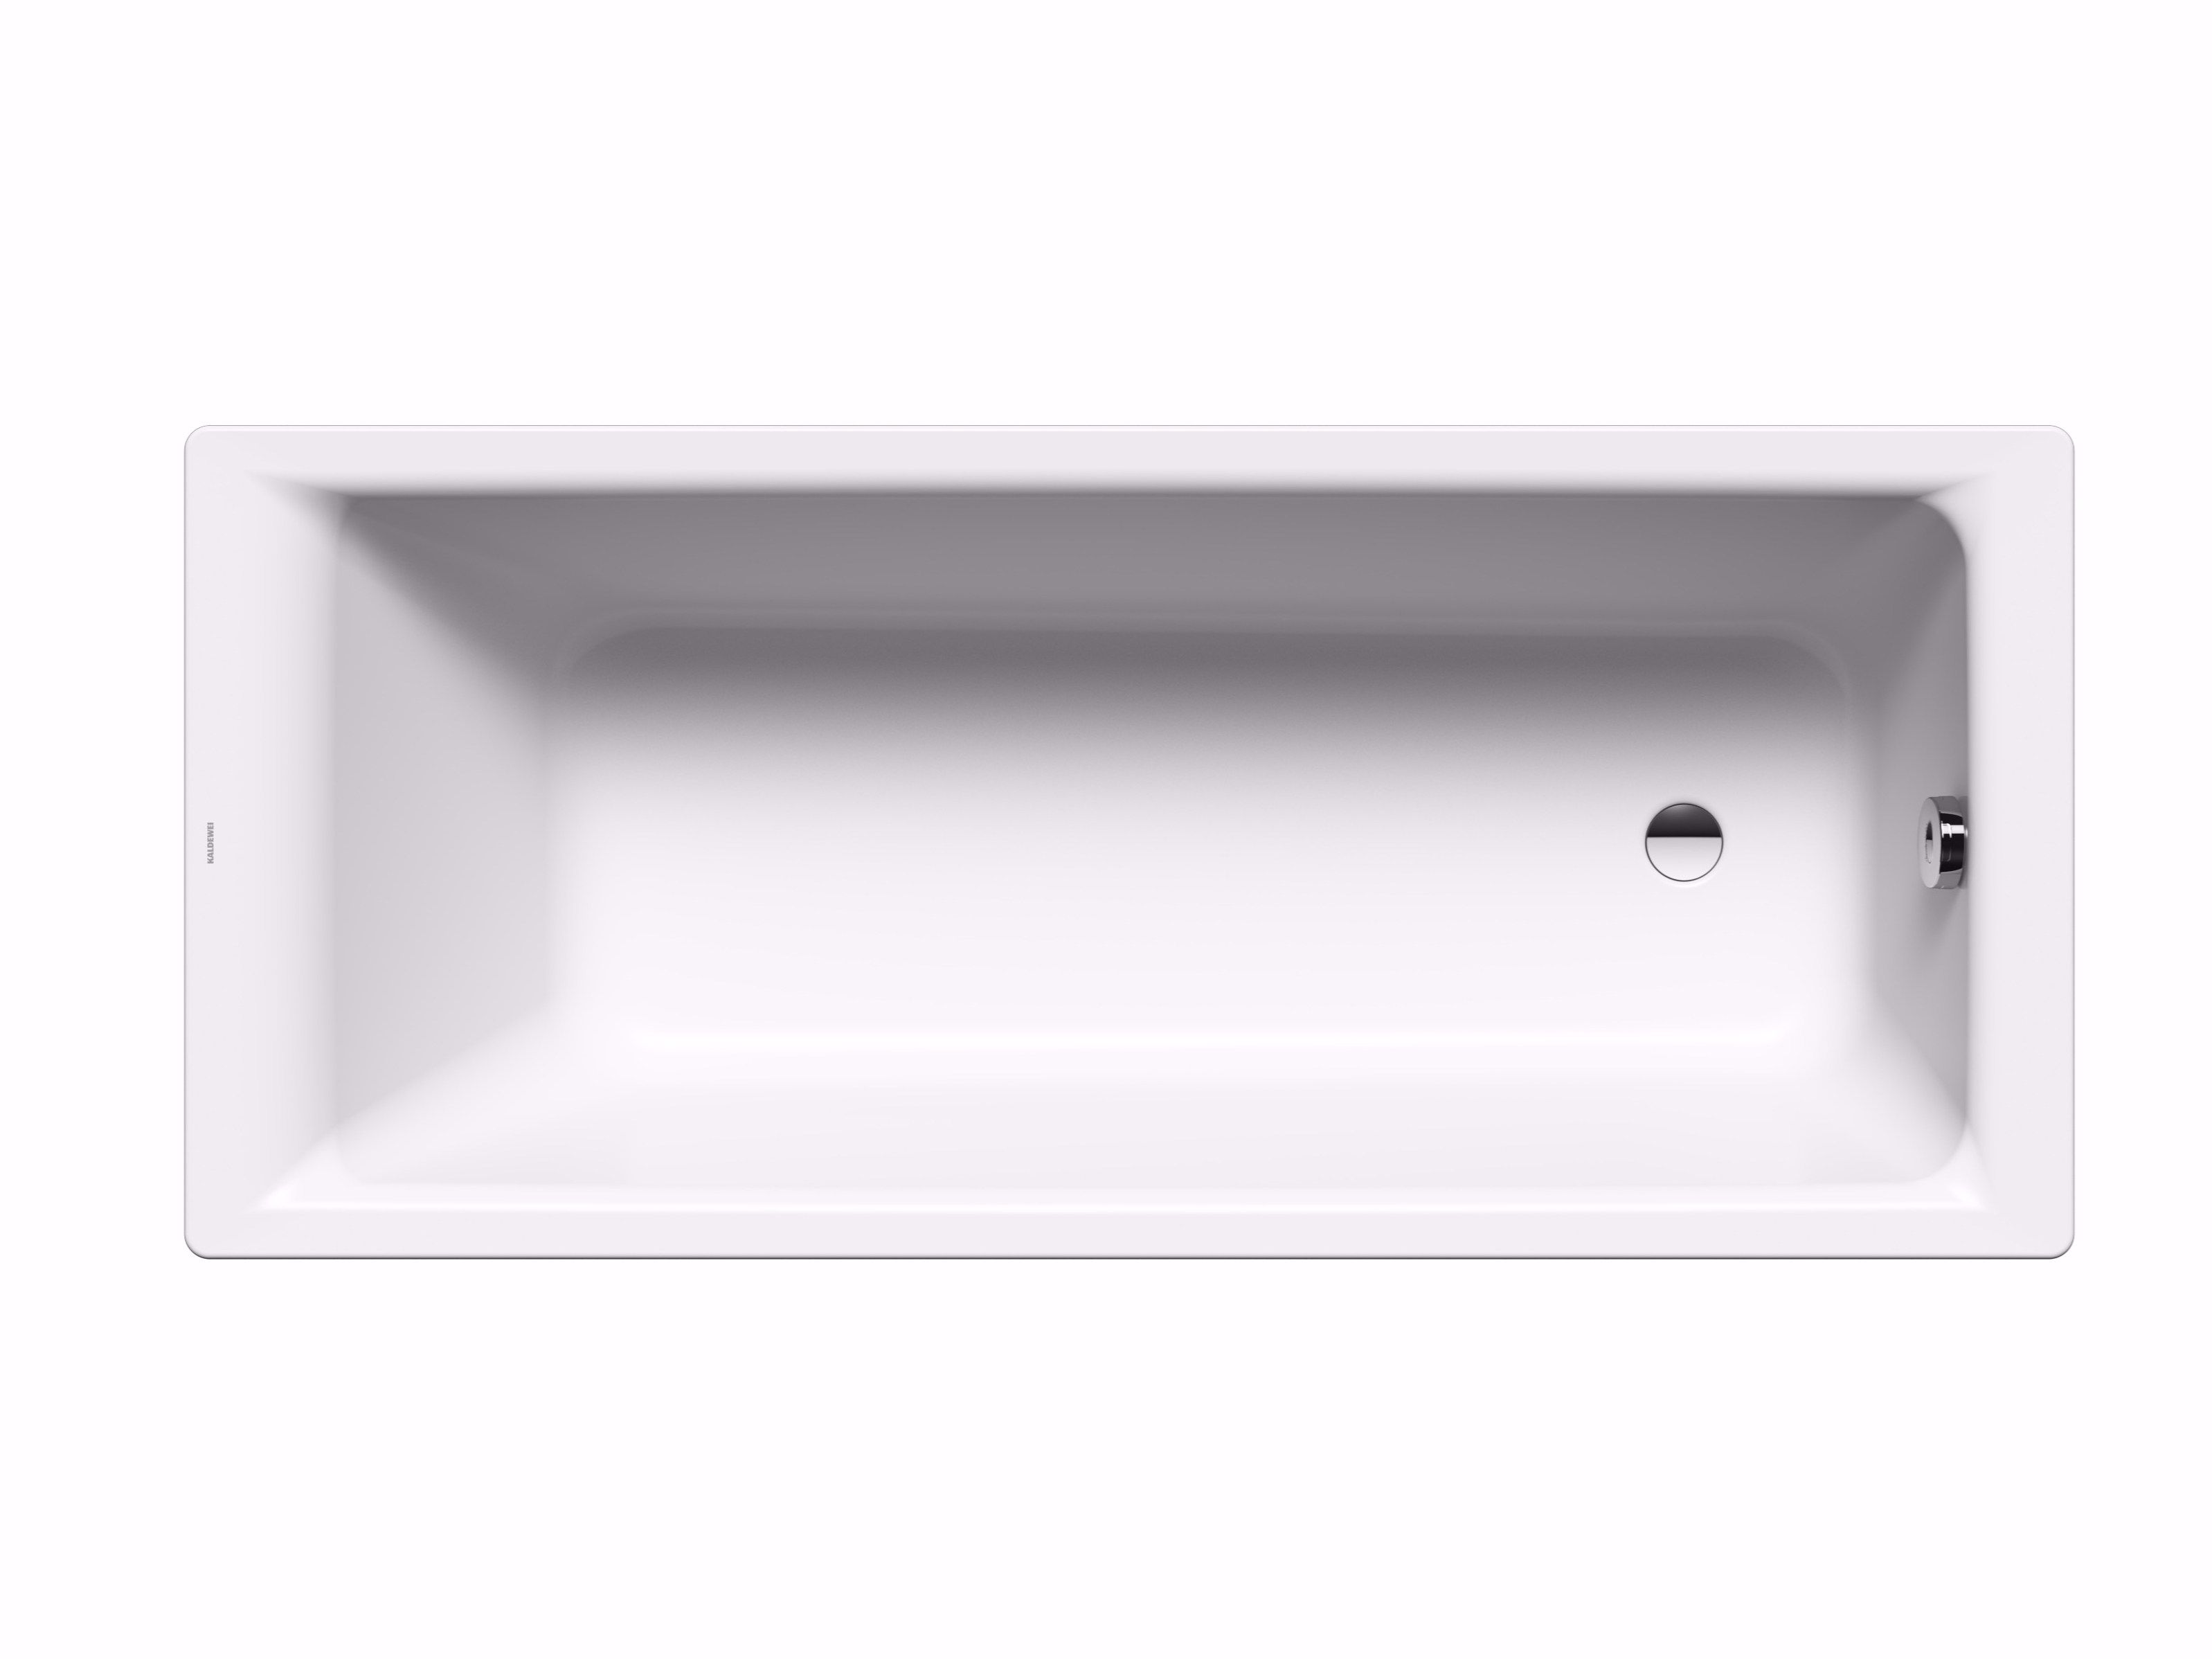 Download The Catalogue And Request Prices Of Puro By Kaldewei Italia Rectangular Steel Bathtub Ambiente Collection Kaldewei Badewanne Wanne